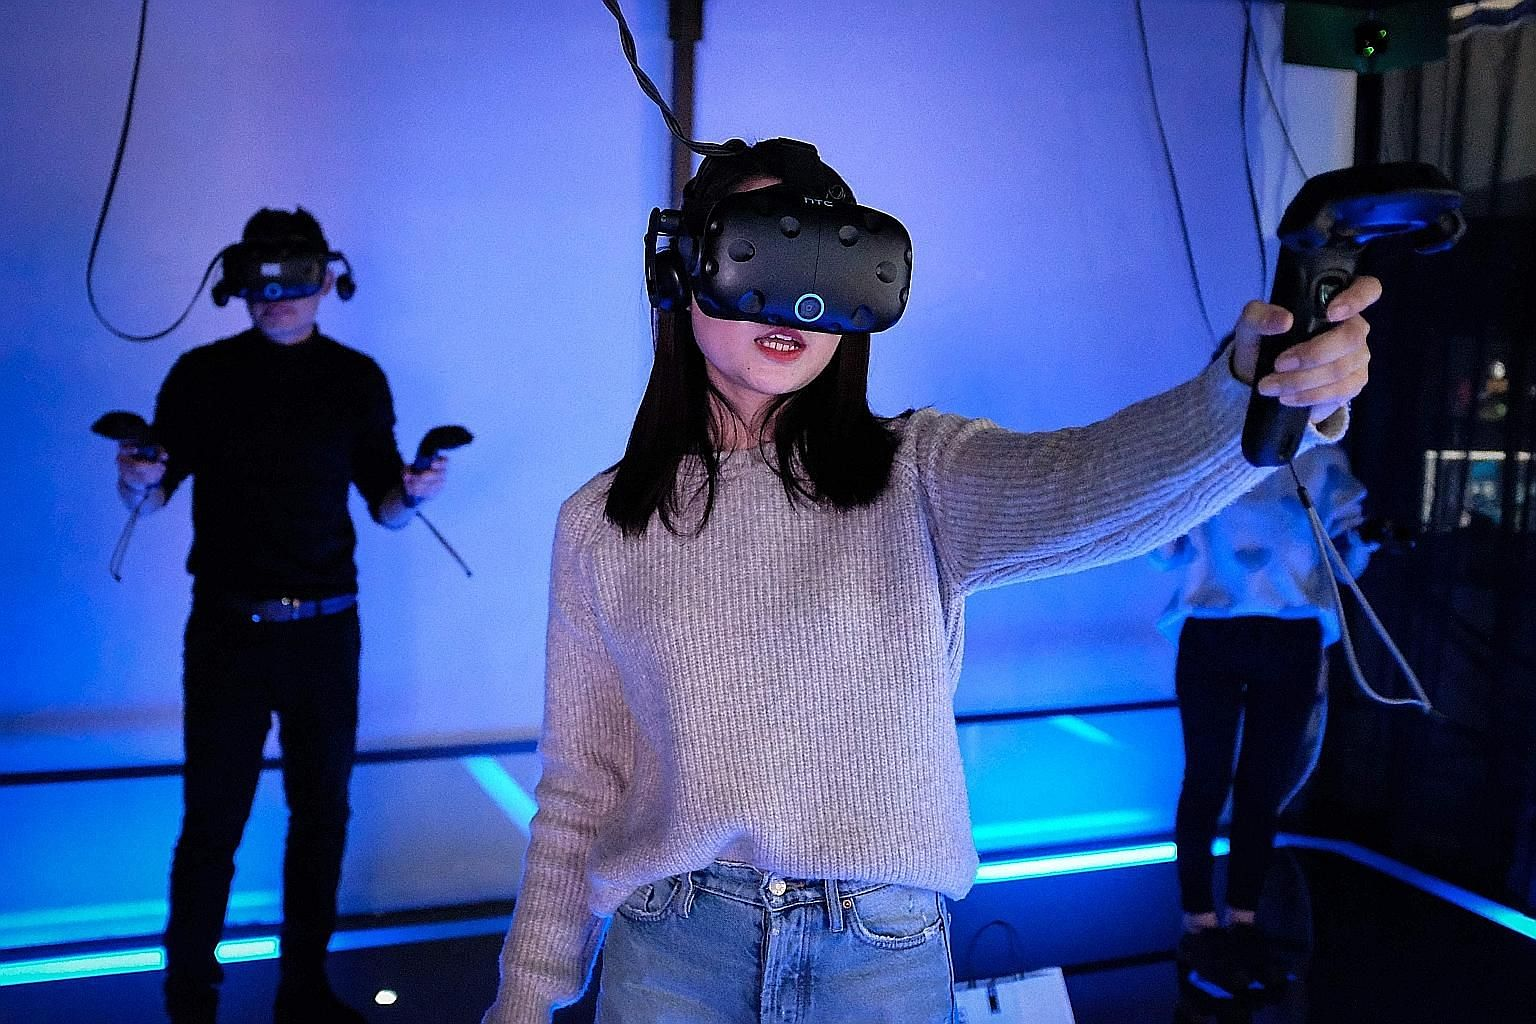 A woman using a virtual reality or VR headset to play games at a Shanghai arcade. China had an estimated 3,000 VR arcades in 2016, and the market could hit 5.25 billion yuan (S$1.1 billion) by 2021.